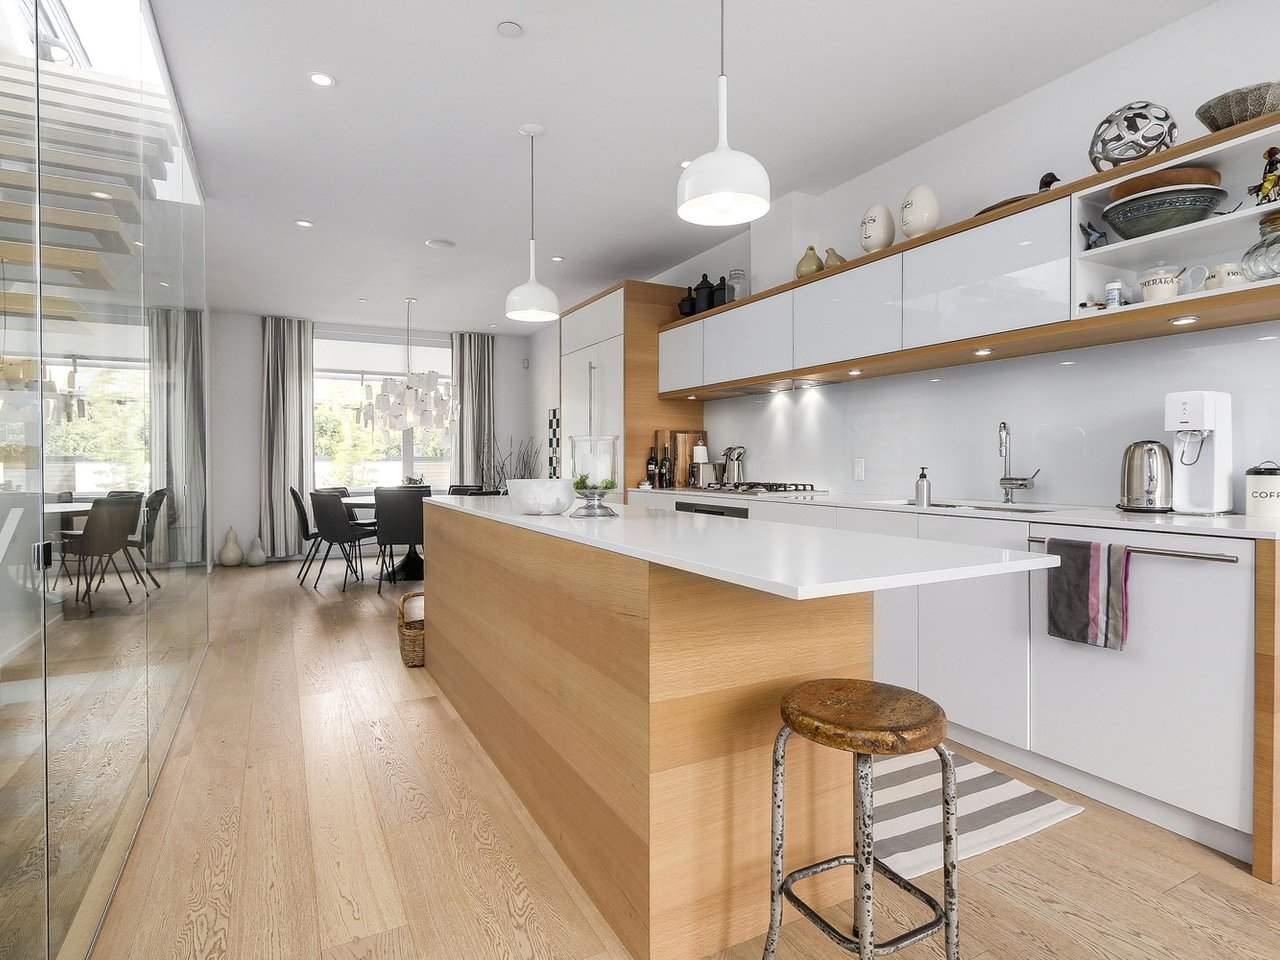 "Photo 2: 1887 W 2ND Avenue in Vancouver: Kitsilano Townhouse for sale in ""Blanc"" (Vancouver West)  : MLS® # R2164681"